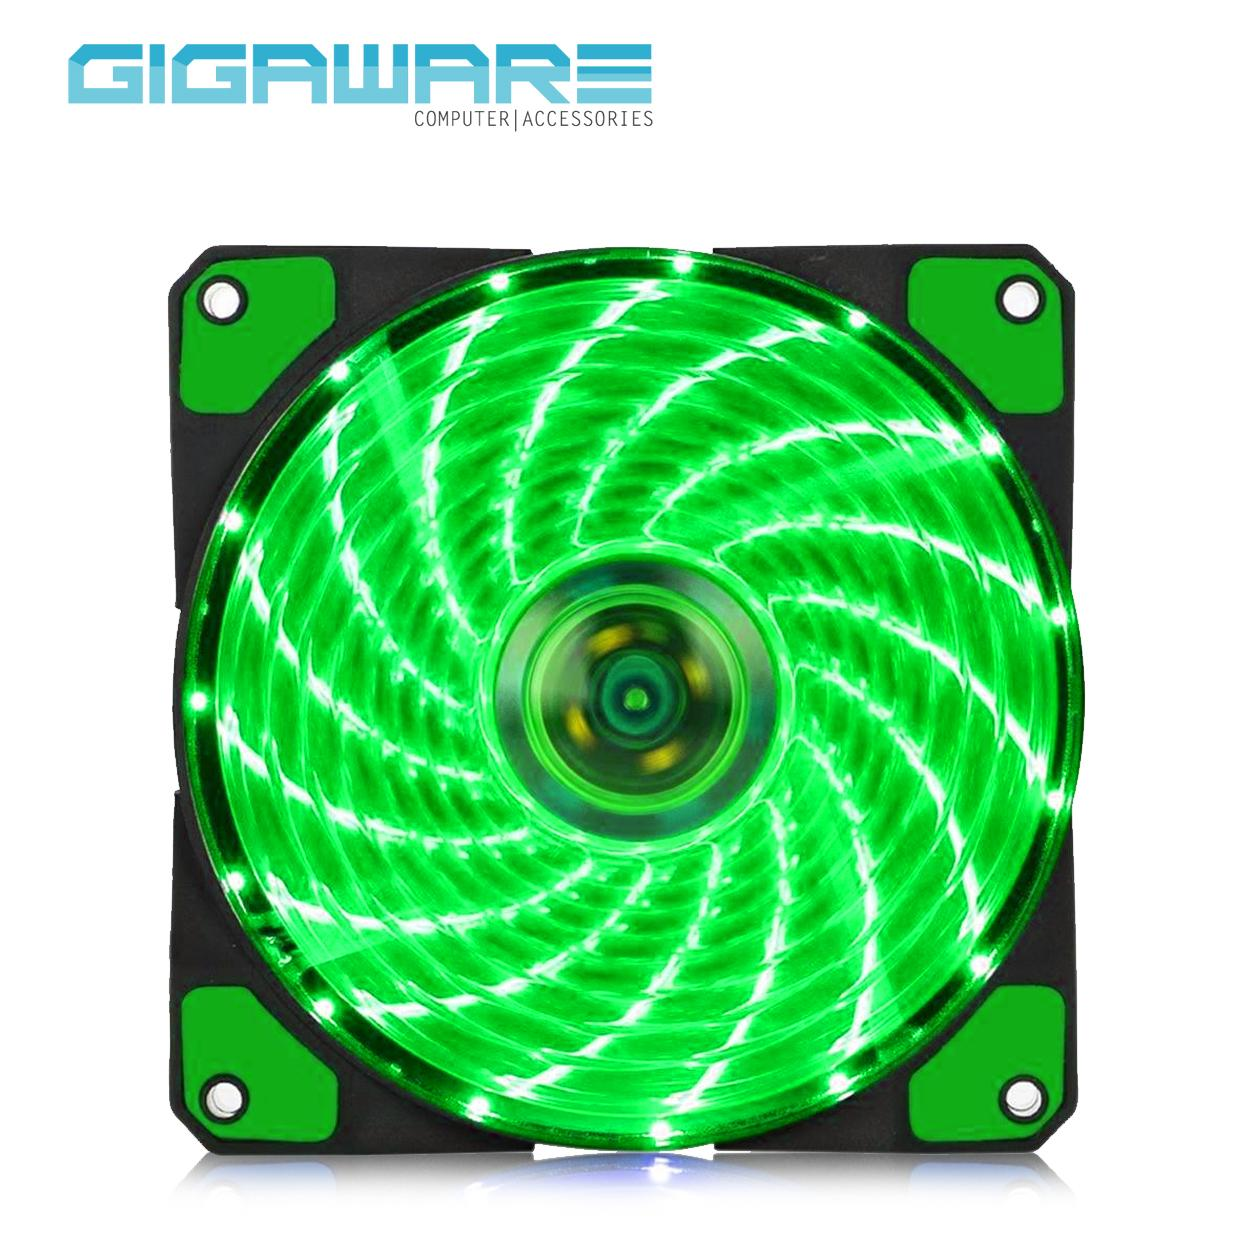 Pc Cabinet Fans For Sale Computer Prices Brands Fan Casing 12cm Alseye Specs In Philippines